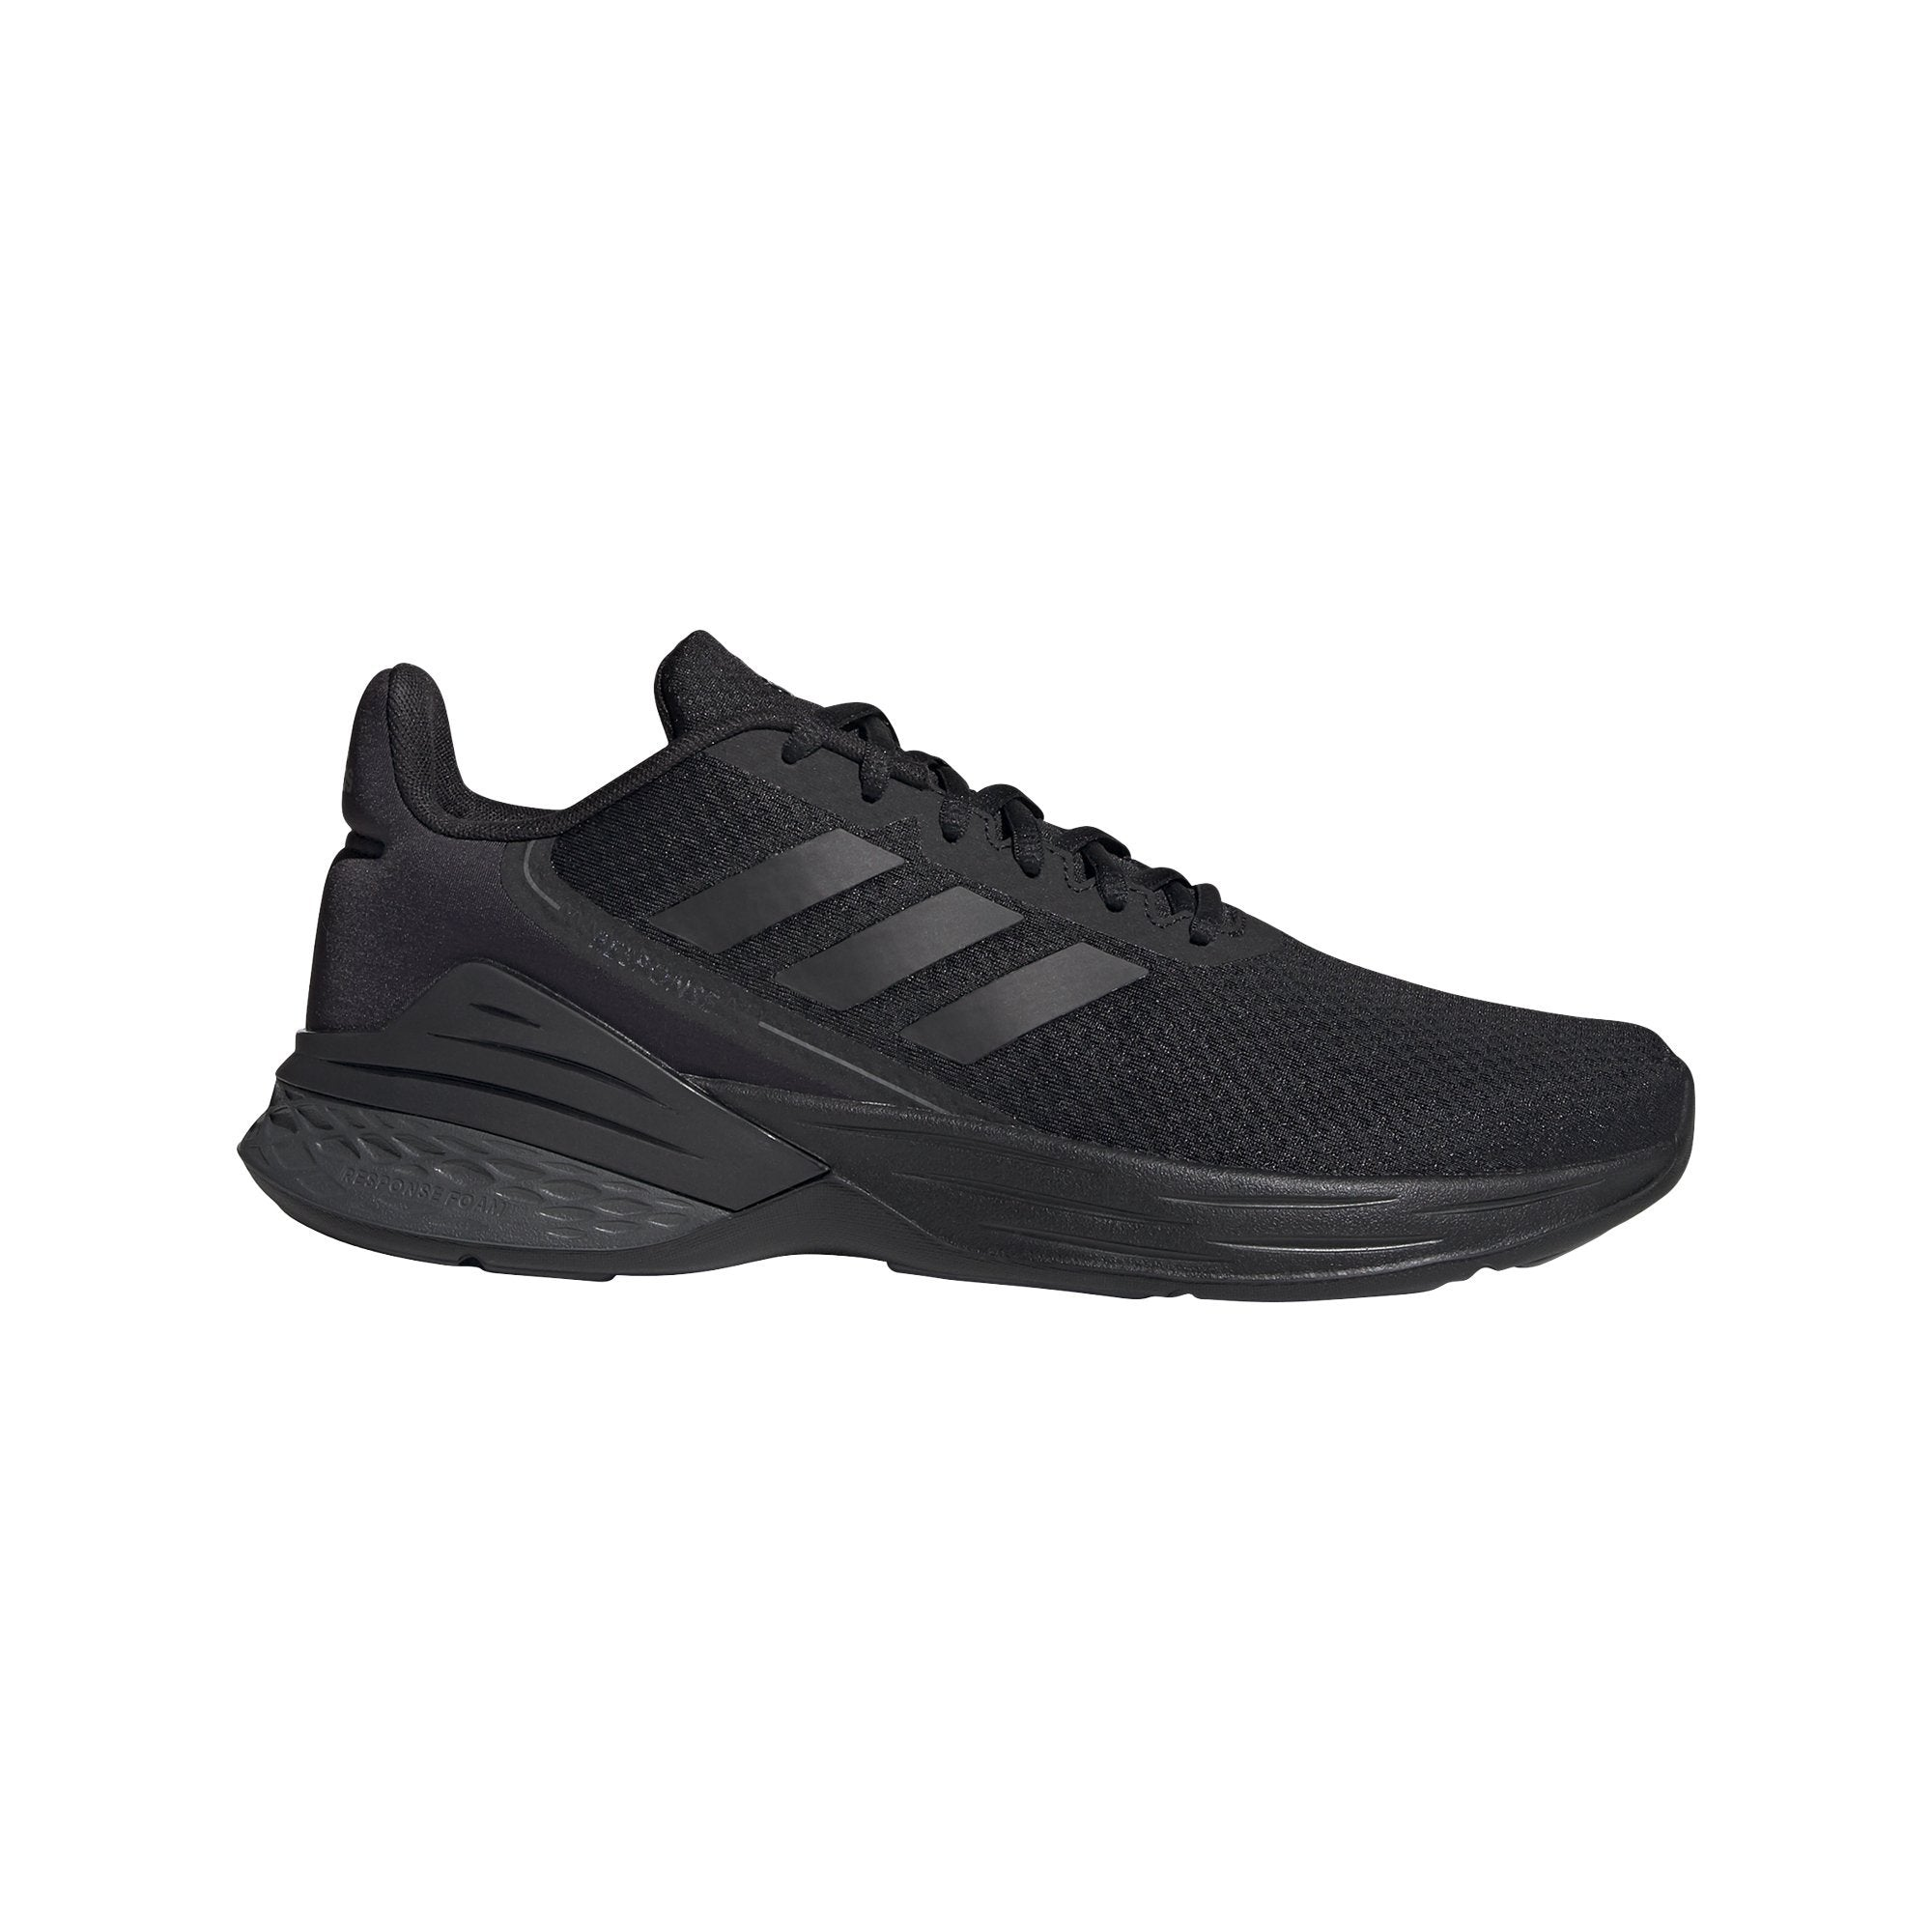 Adidas Mens Response SR Shoes - Core Black/Core Black/Grey Six SP-Footwear-Mens Adidas